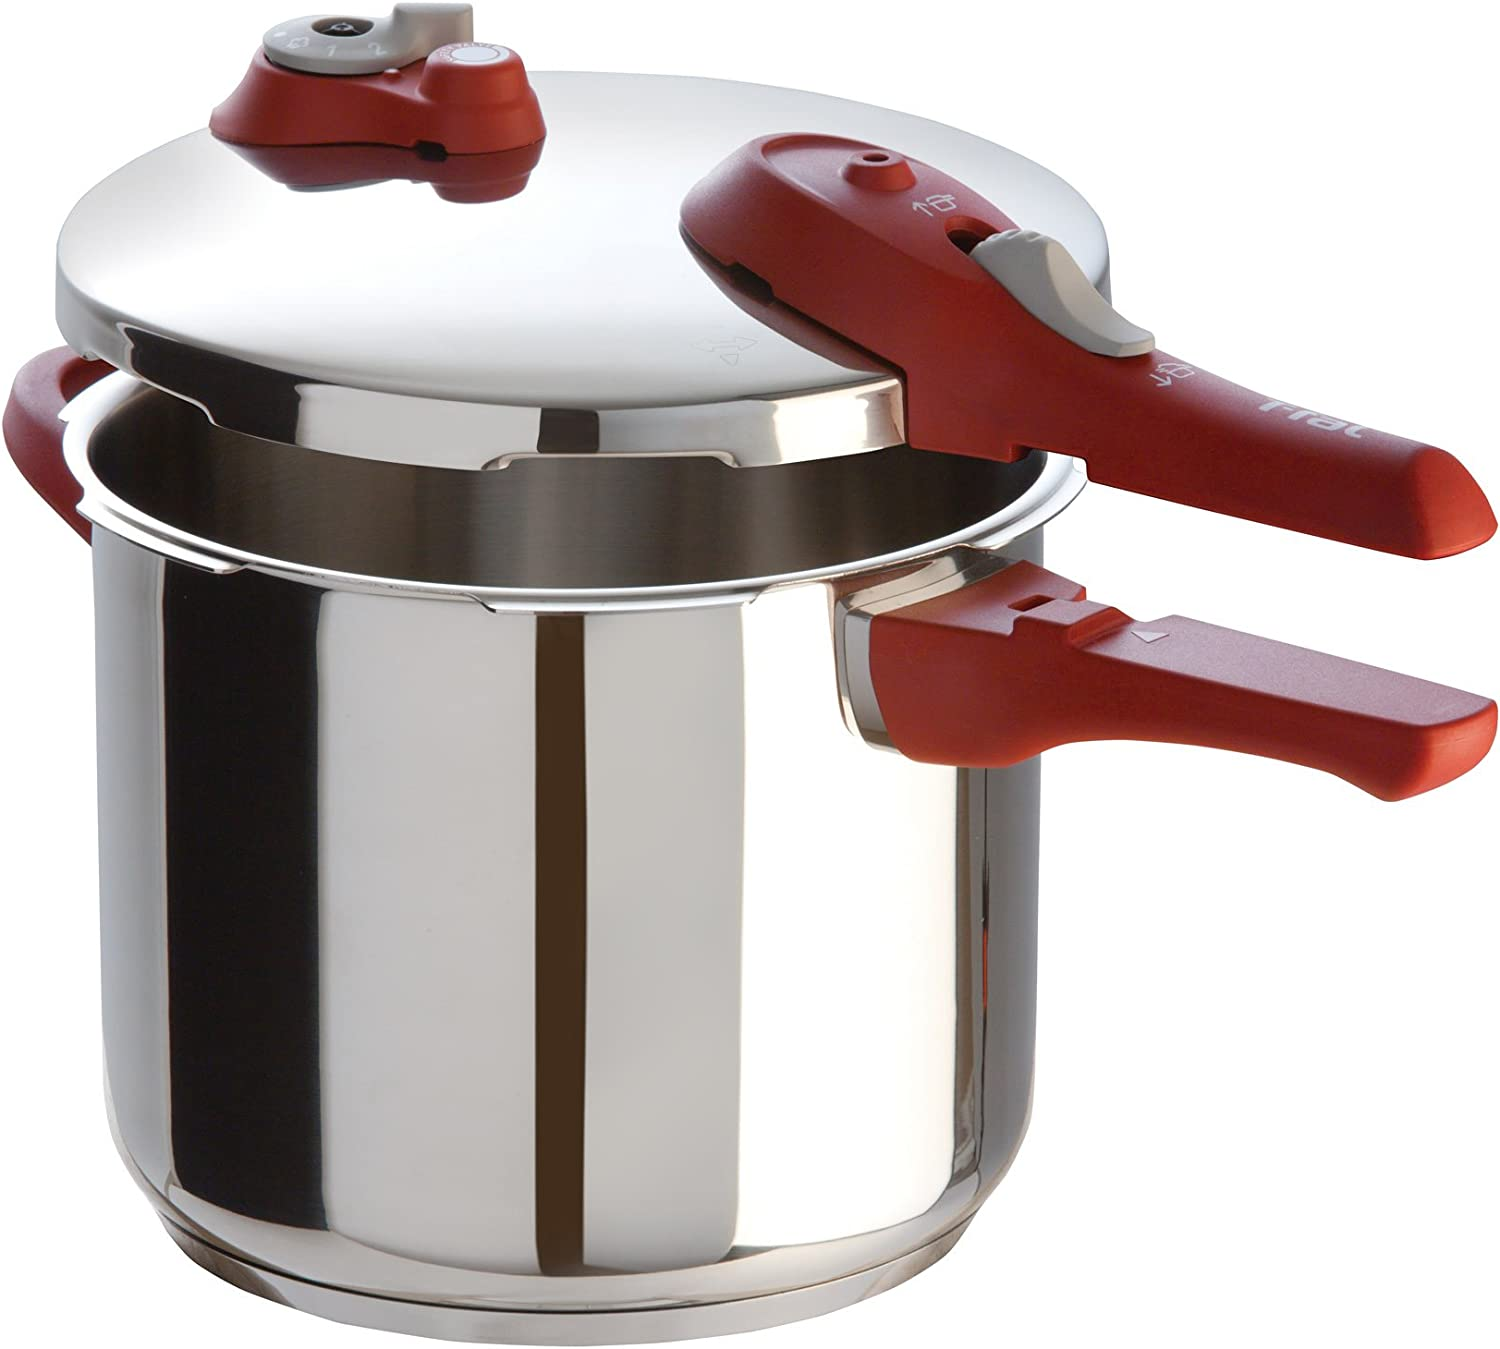 T-fal Simply Delicioso YS2H4064 Express Stainless Steel Dishwasher Safe 7.4-Quart Pressure Cooker, Silver